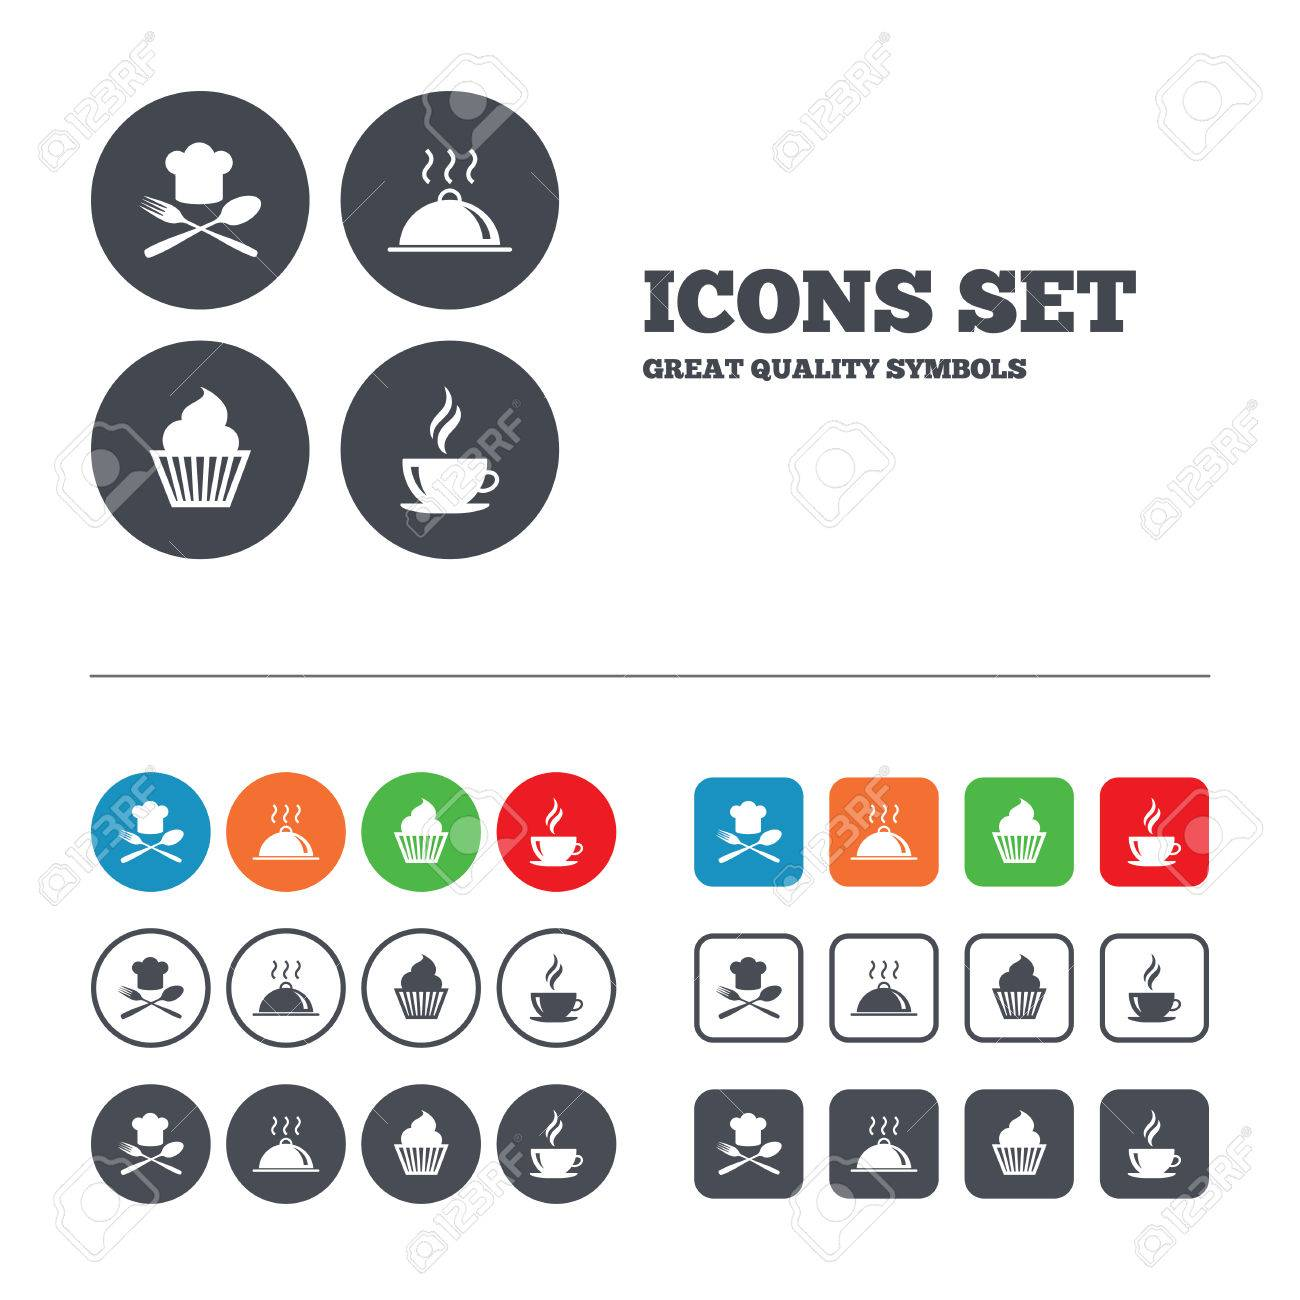 Food And Drink Icons Muffin Cupcake Symbol Fork And Spoon With Chef Hat Sign Hot Coffee Cup Food Platter Serving Web Buttons Set Circles And